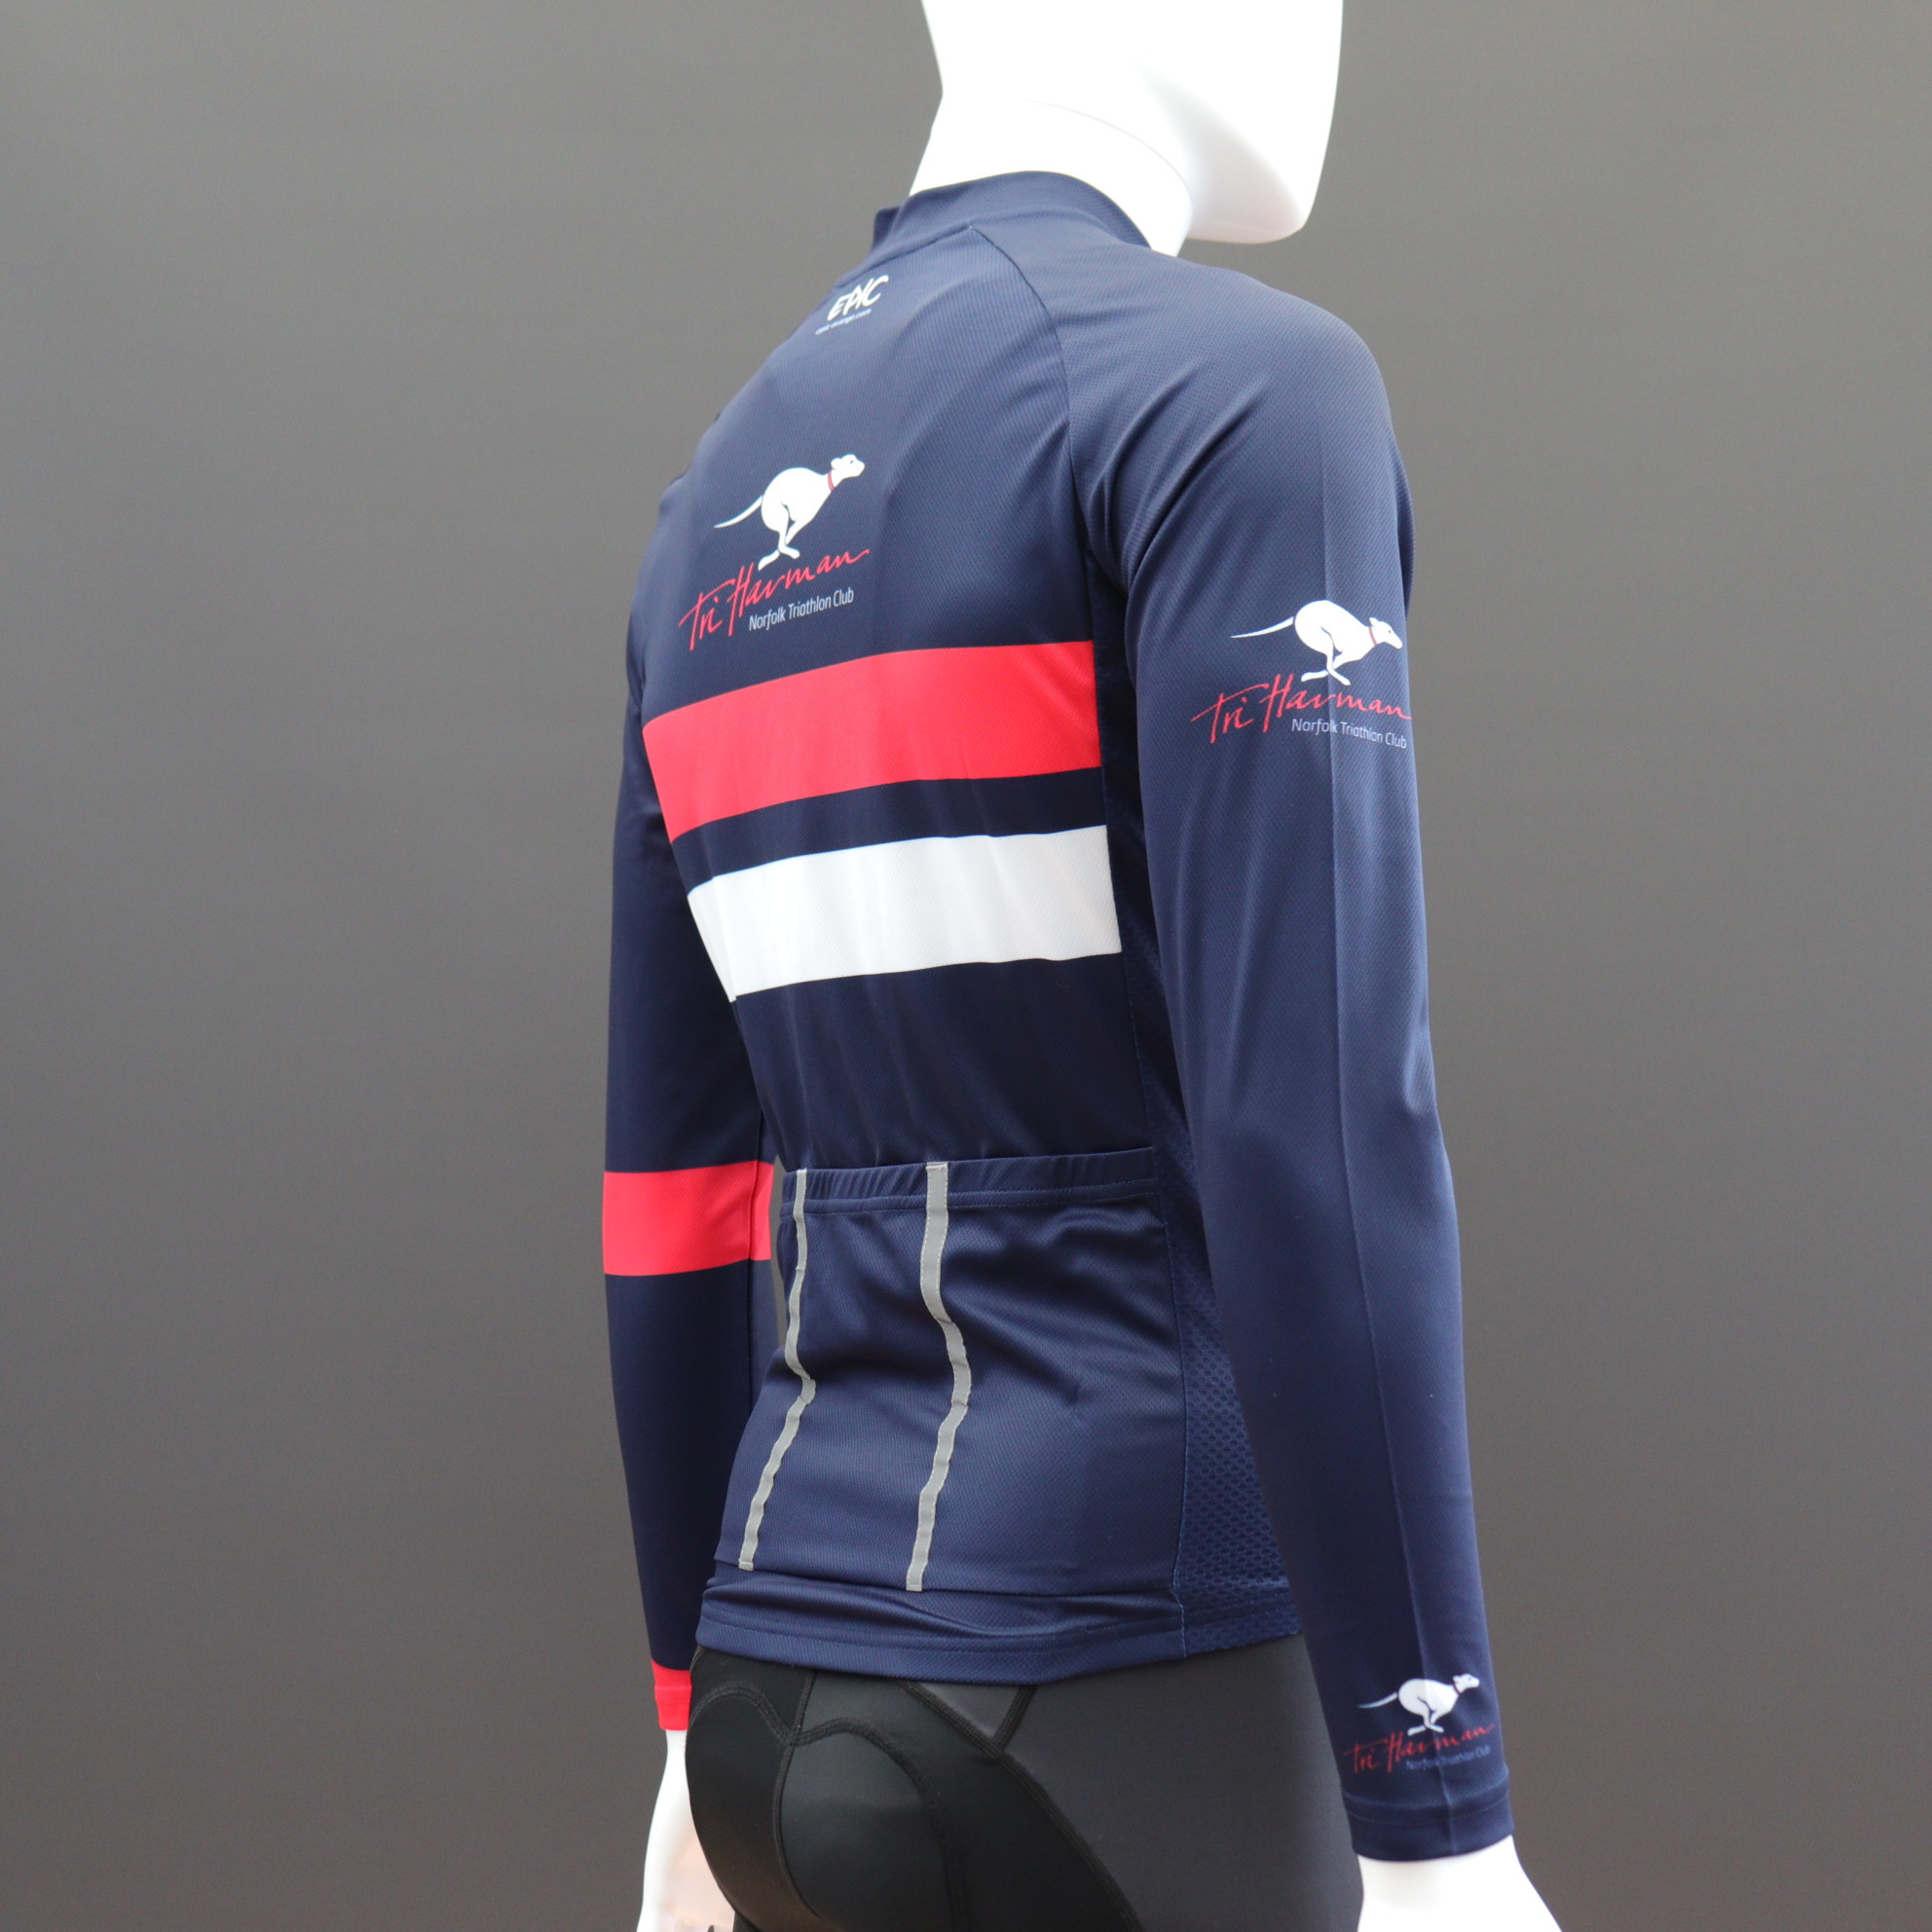 Long Sleeve Classic Cycle Jerseys